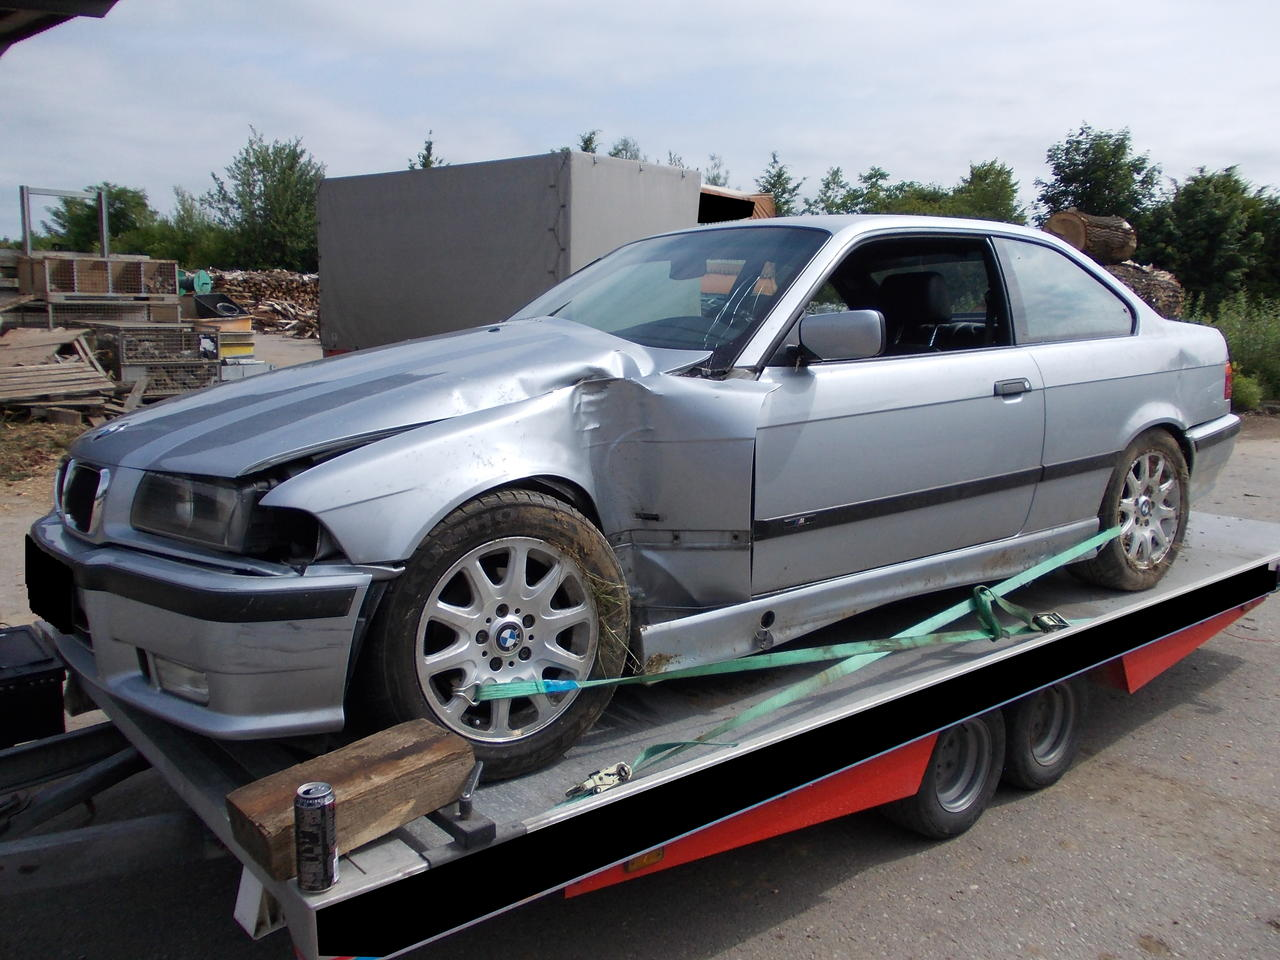 e36 unfall lohnt sich reparatur 3er bmw e36 forum. Black Bedroom Furniture Sets. Home Design Ideas